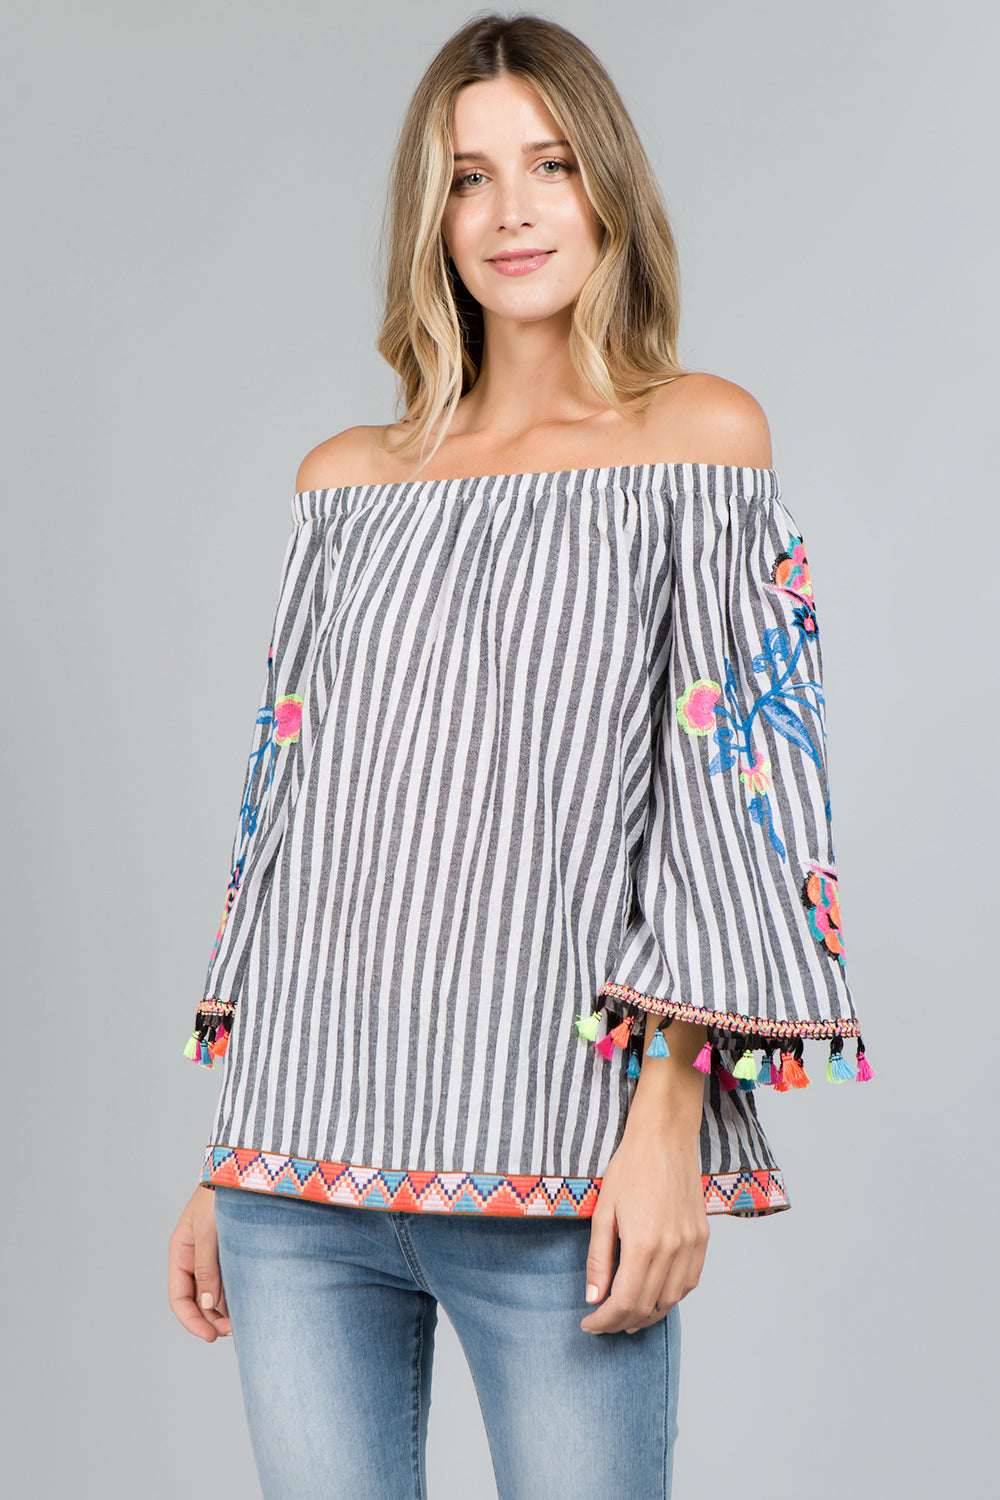 0d549d51 T2461 Floral Embroidery Striped Top – SeeandBeSeen